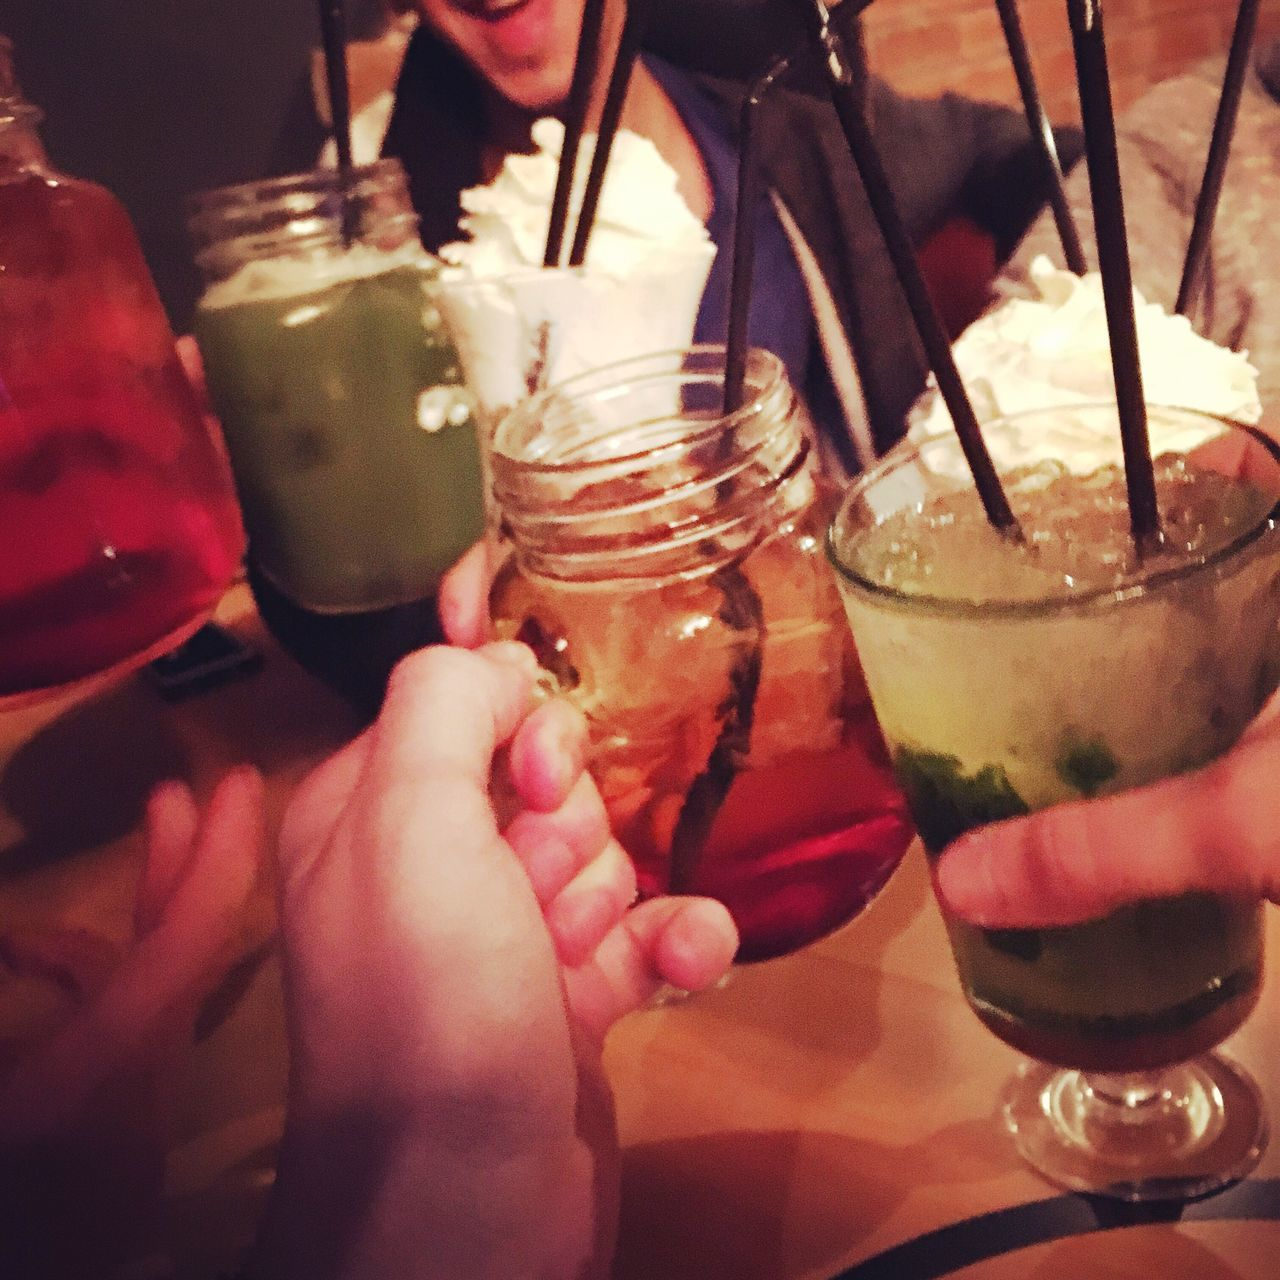 Drink / friends Drink Friends Amical Fiesta Fete Alcool  Peaple Table Photography Vintage Many People First Eyeem Photo